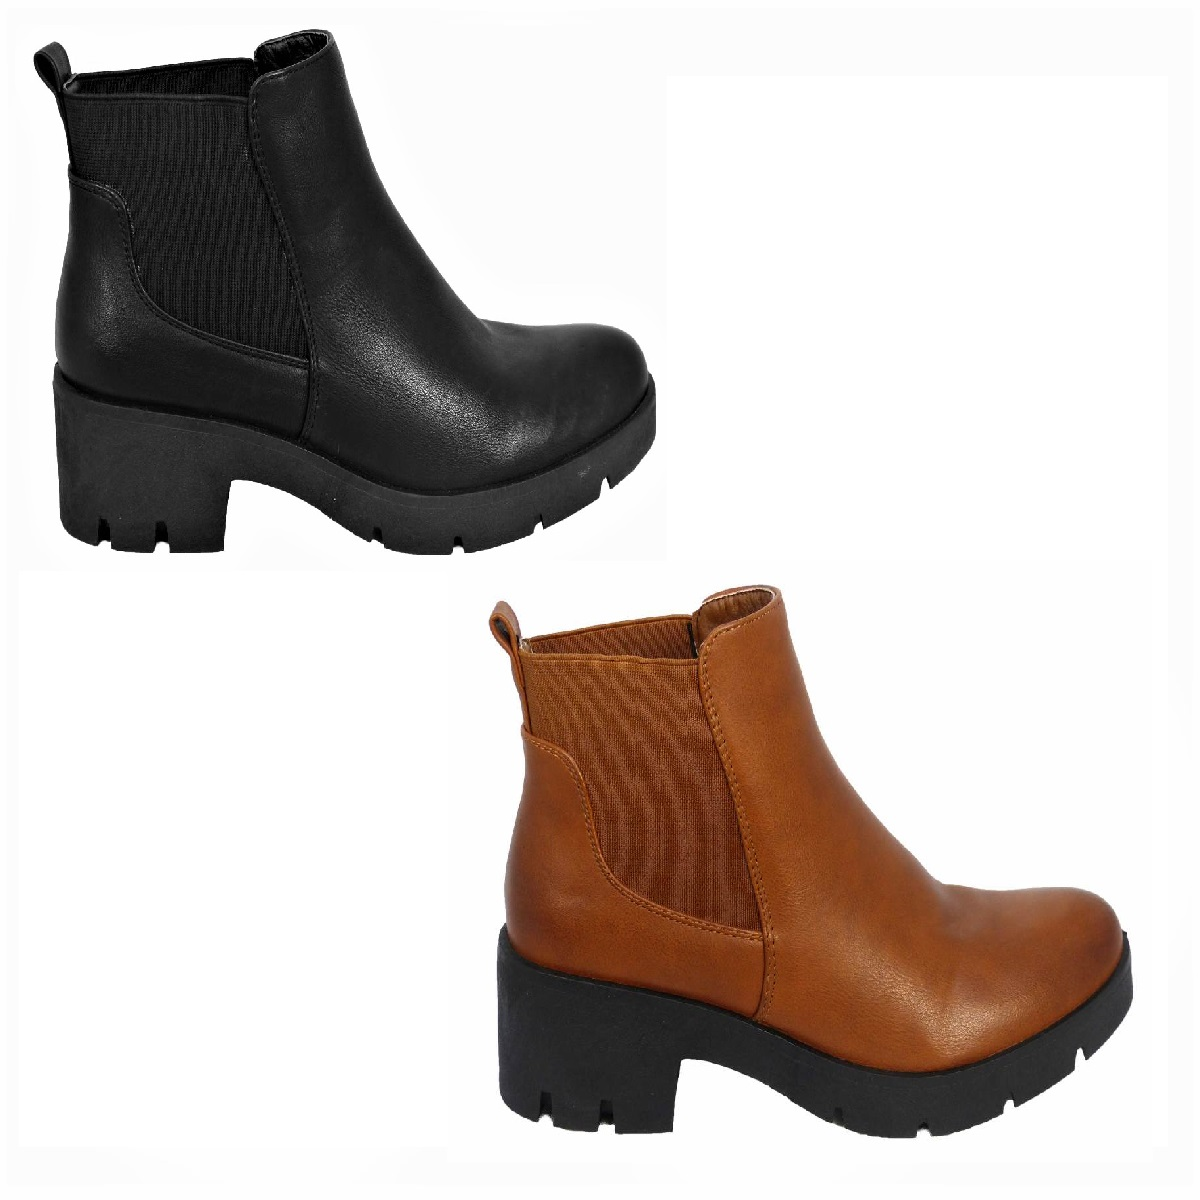 431e765600c Details about New Womens Ladies Chunky Block Heel Grip Sole Chelsea Ankle  Boots Shoes Size 3-8